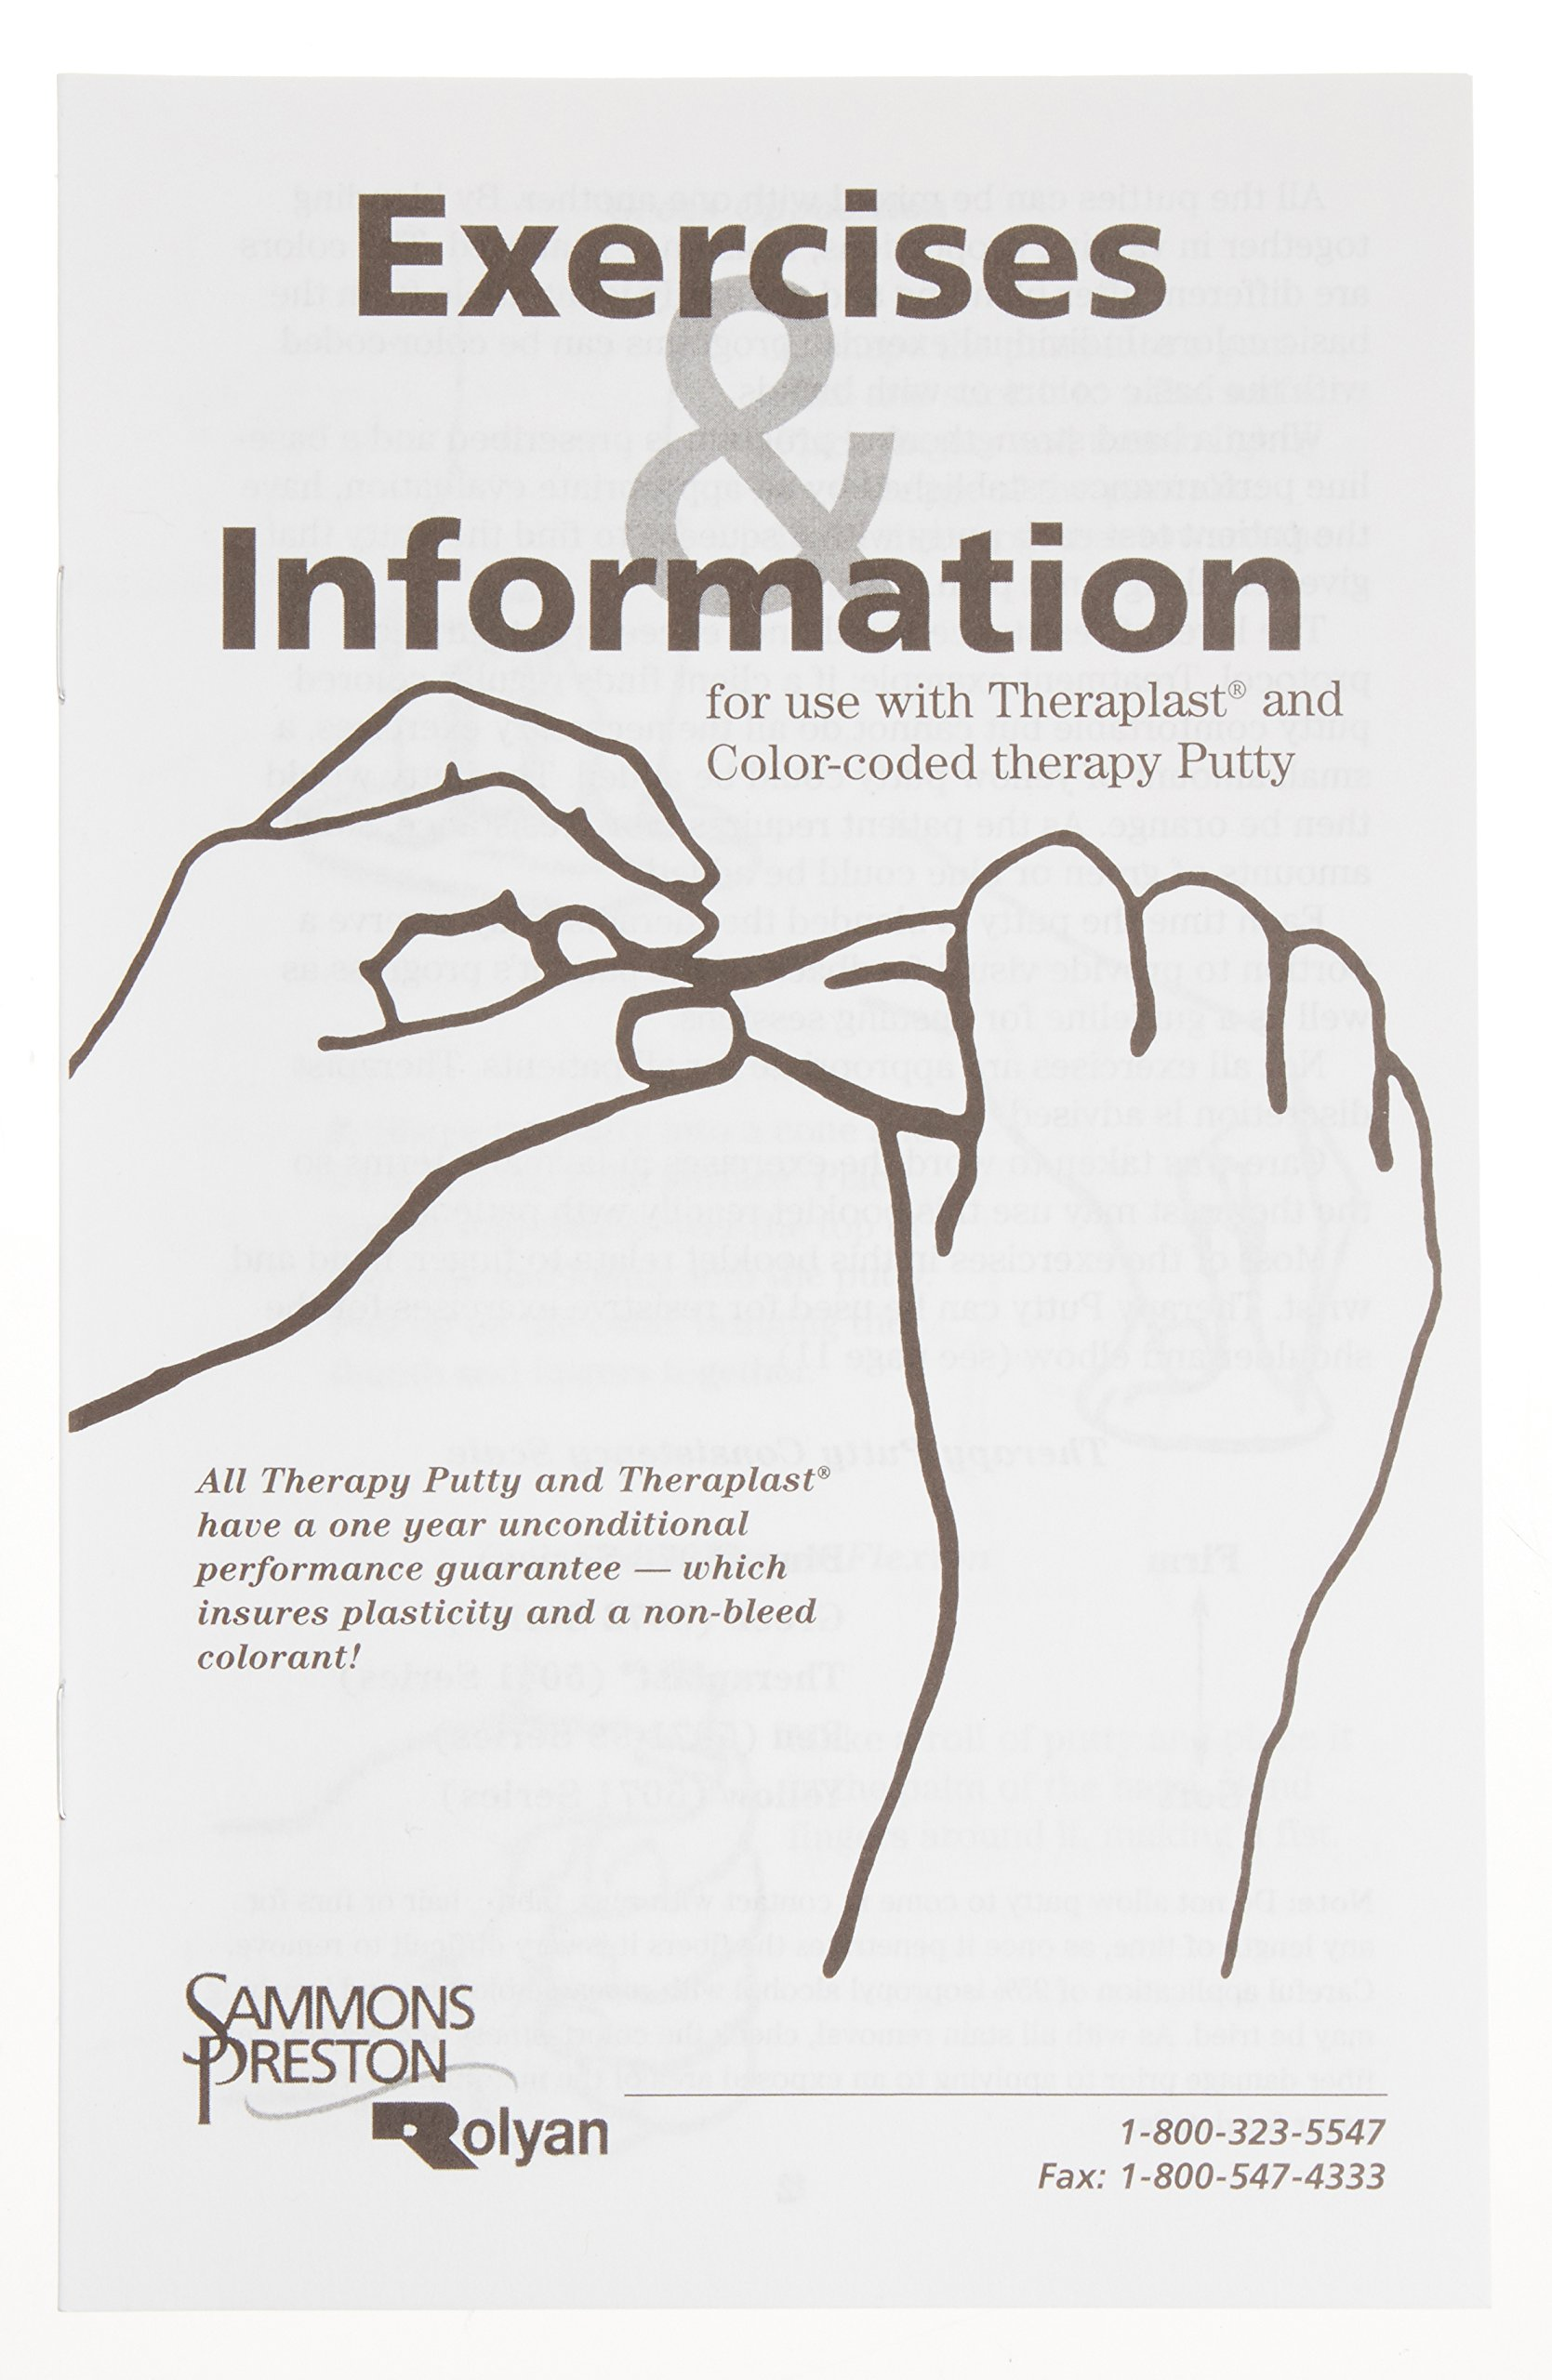 Therapy Putty Hand Exercise Book, 12 Page Booklet with Hand and Wrist Exercises for at-Home Physical and Occupational Therapy, Grip Strength Training, Surgery and Injury Recovery, Pack of 20